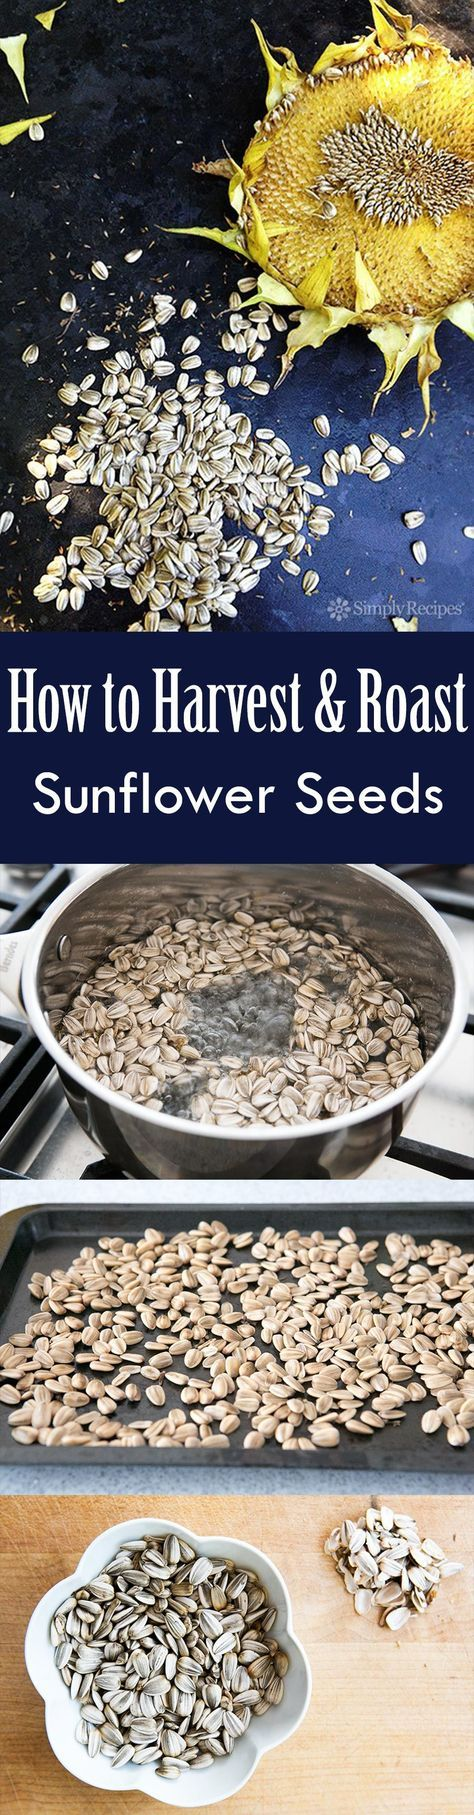 Growing sunflowers? Here's how to harvest and roast the sunflower seeds from your sunflowers.